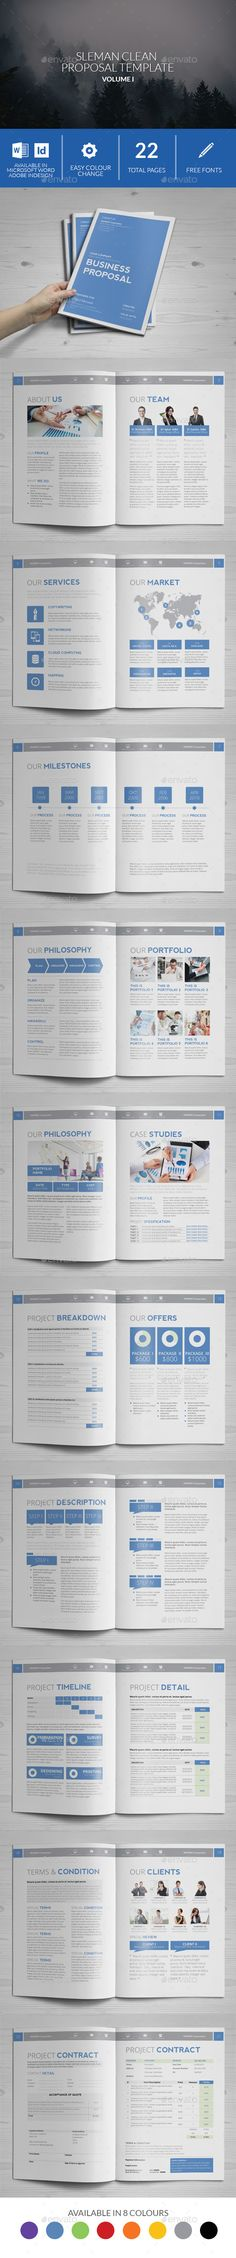 Bravo_Corporate \ Creative Business Proposal Creative, Proposals - best proposal templates